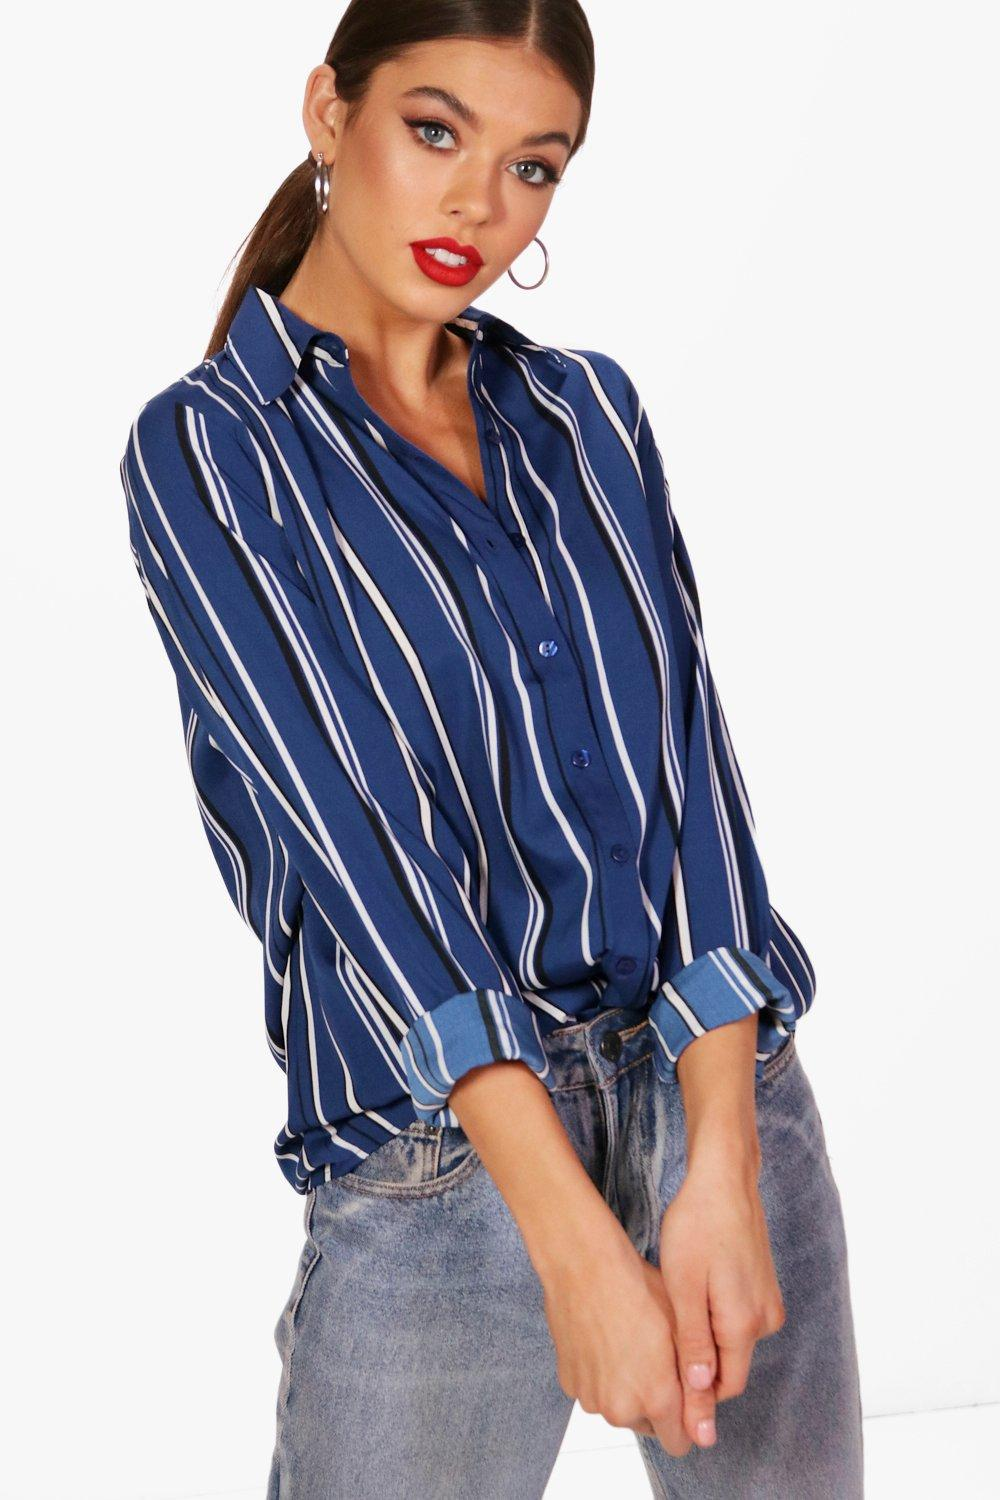 b1f7b72c3cc1 Womens Blue Oversized Stripe Shirt. Hover to zoom